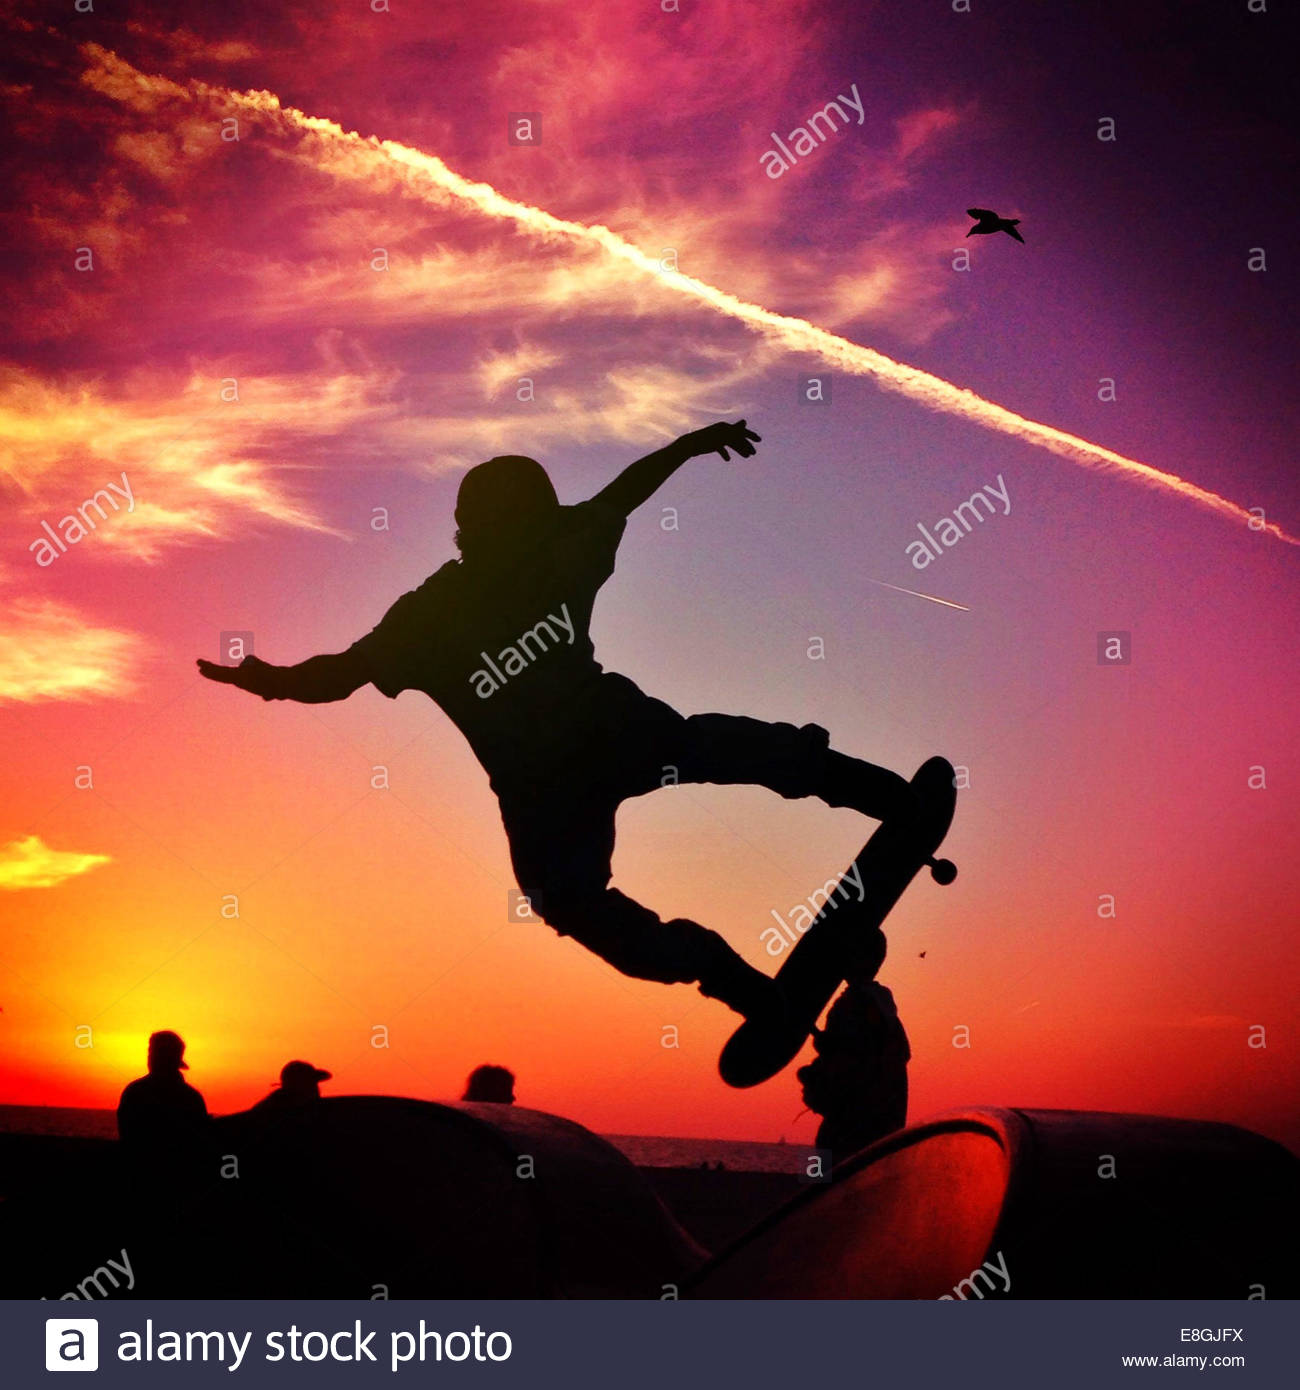 Silhouette of man Skateboarding at sunset - Stock Image